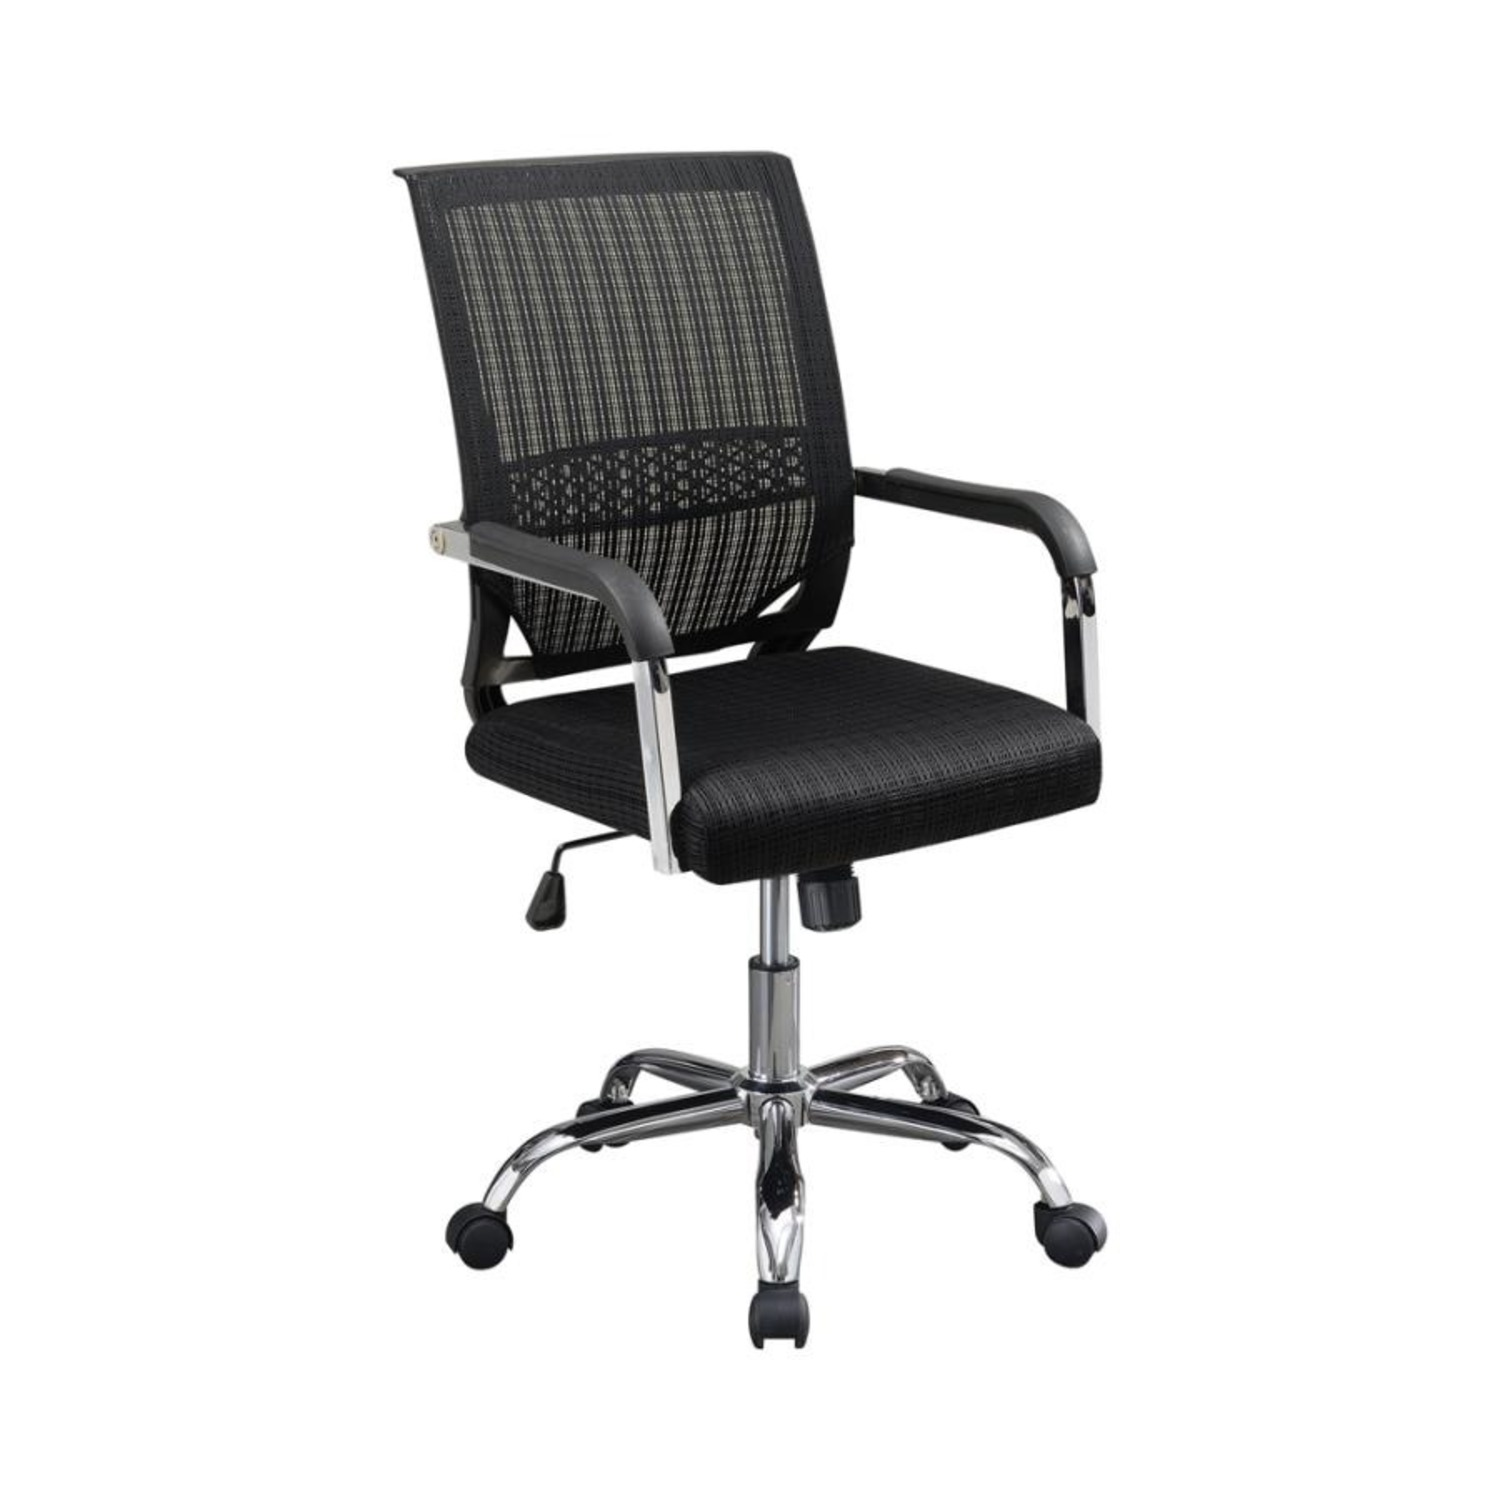 Office Chair In Black Fabric Finish W/ Mesh Back - image-0